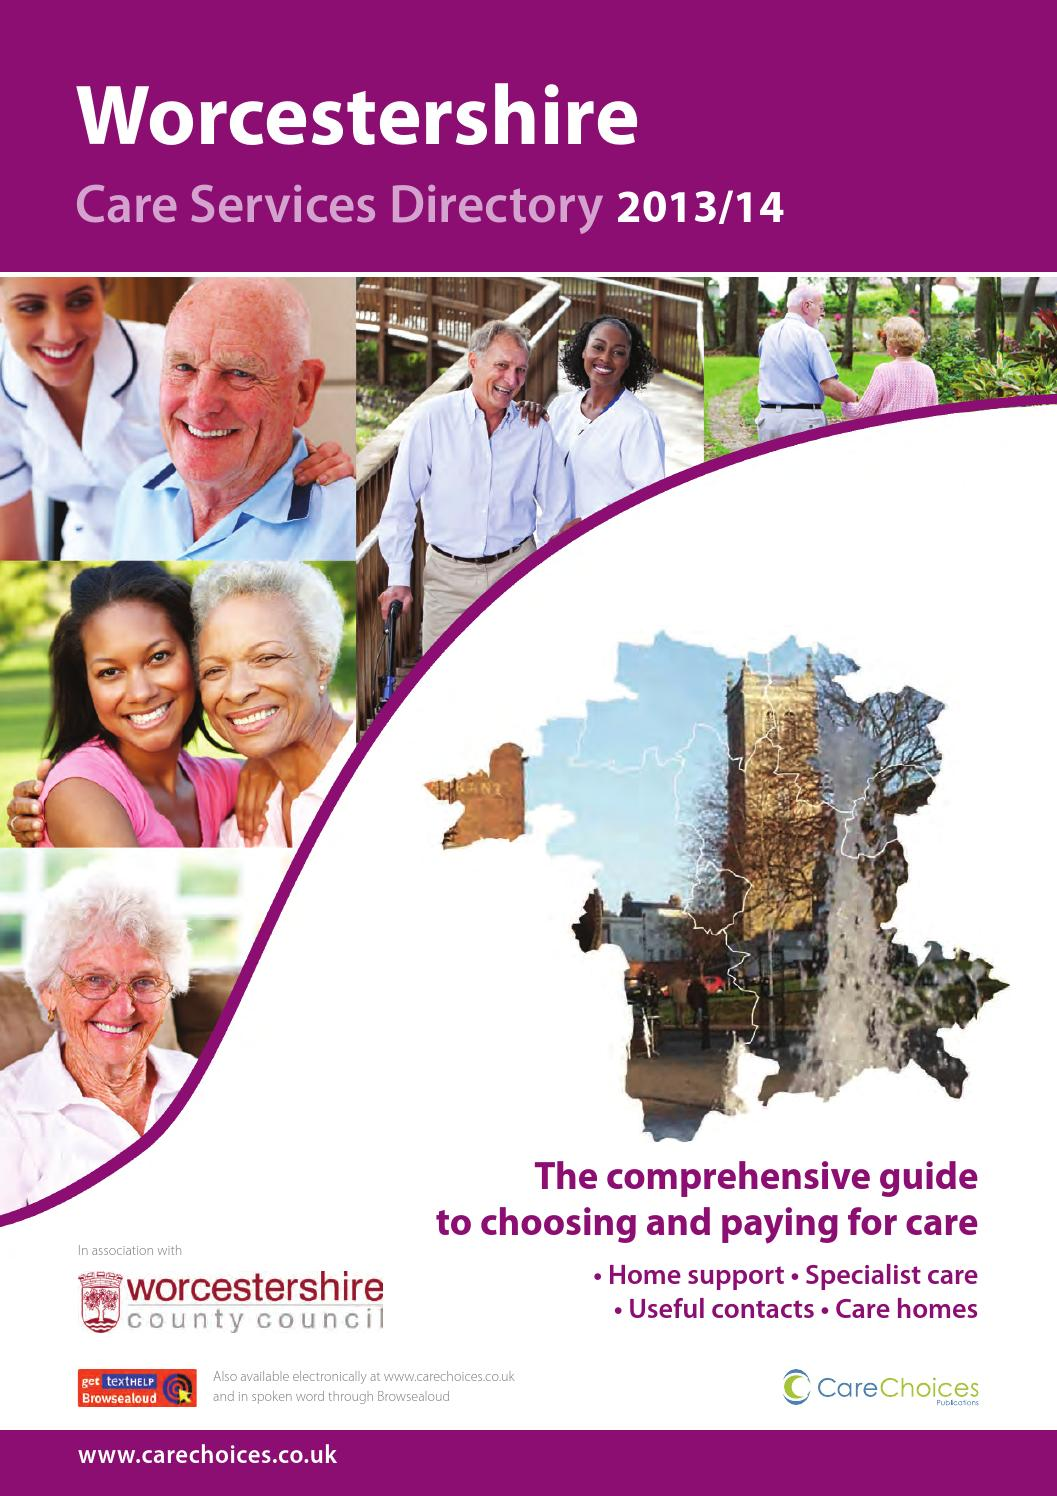 Worcestershire Care Services Directory 2013 14 By Choices Ltd